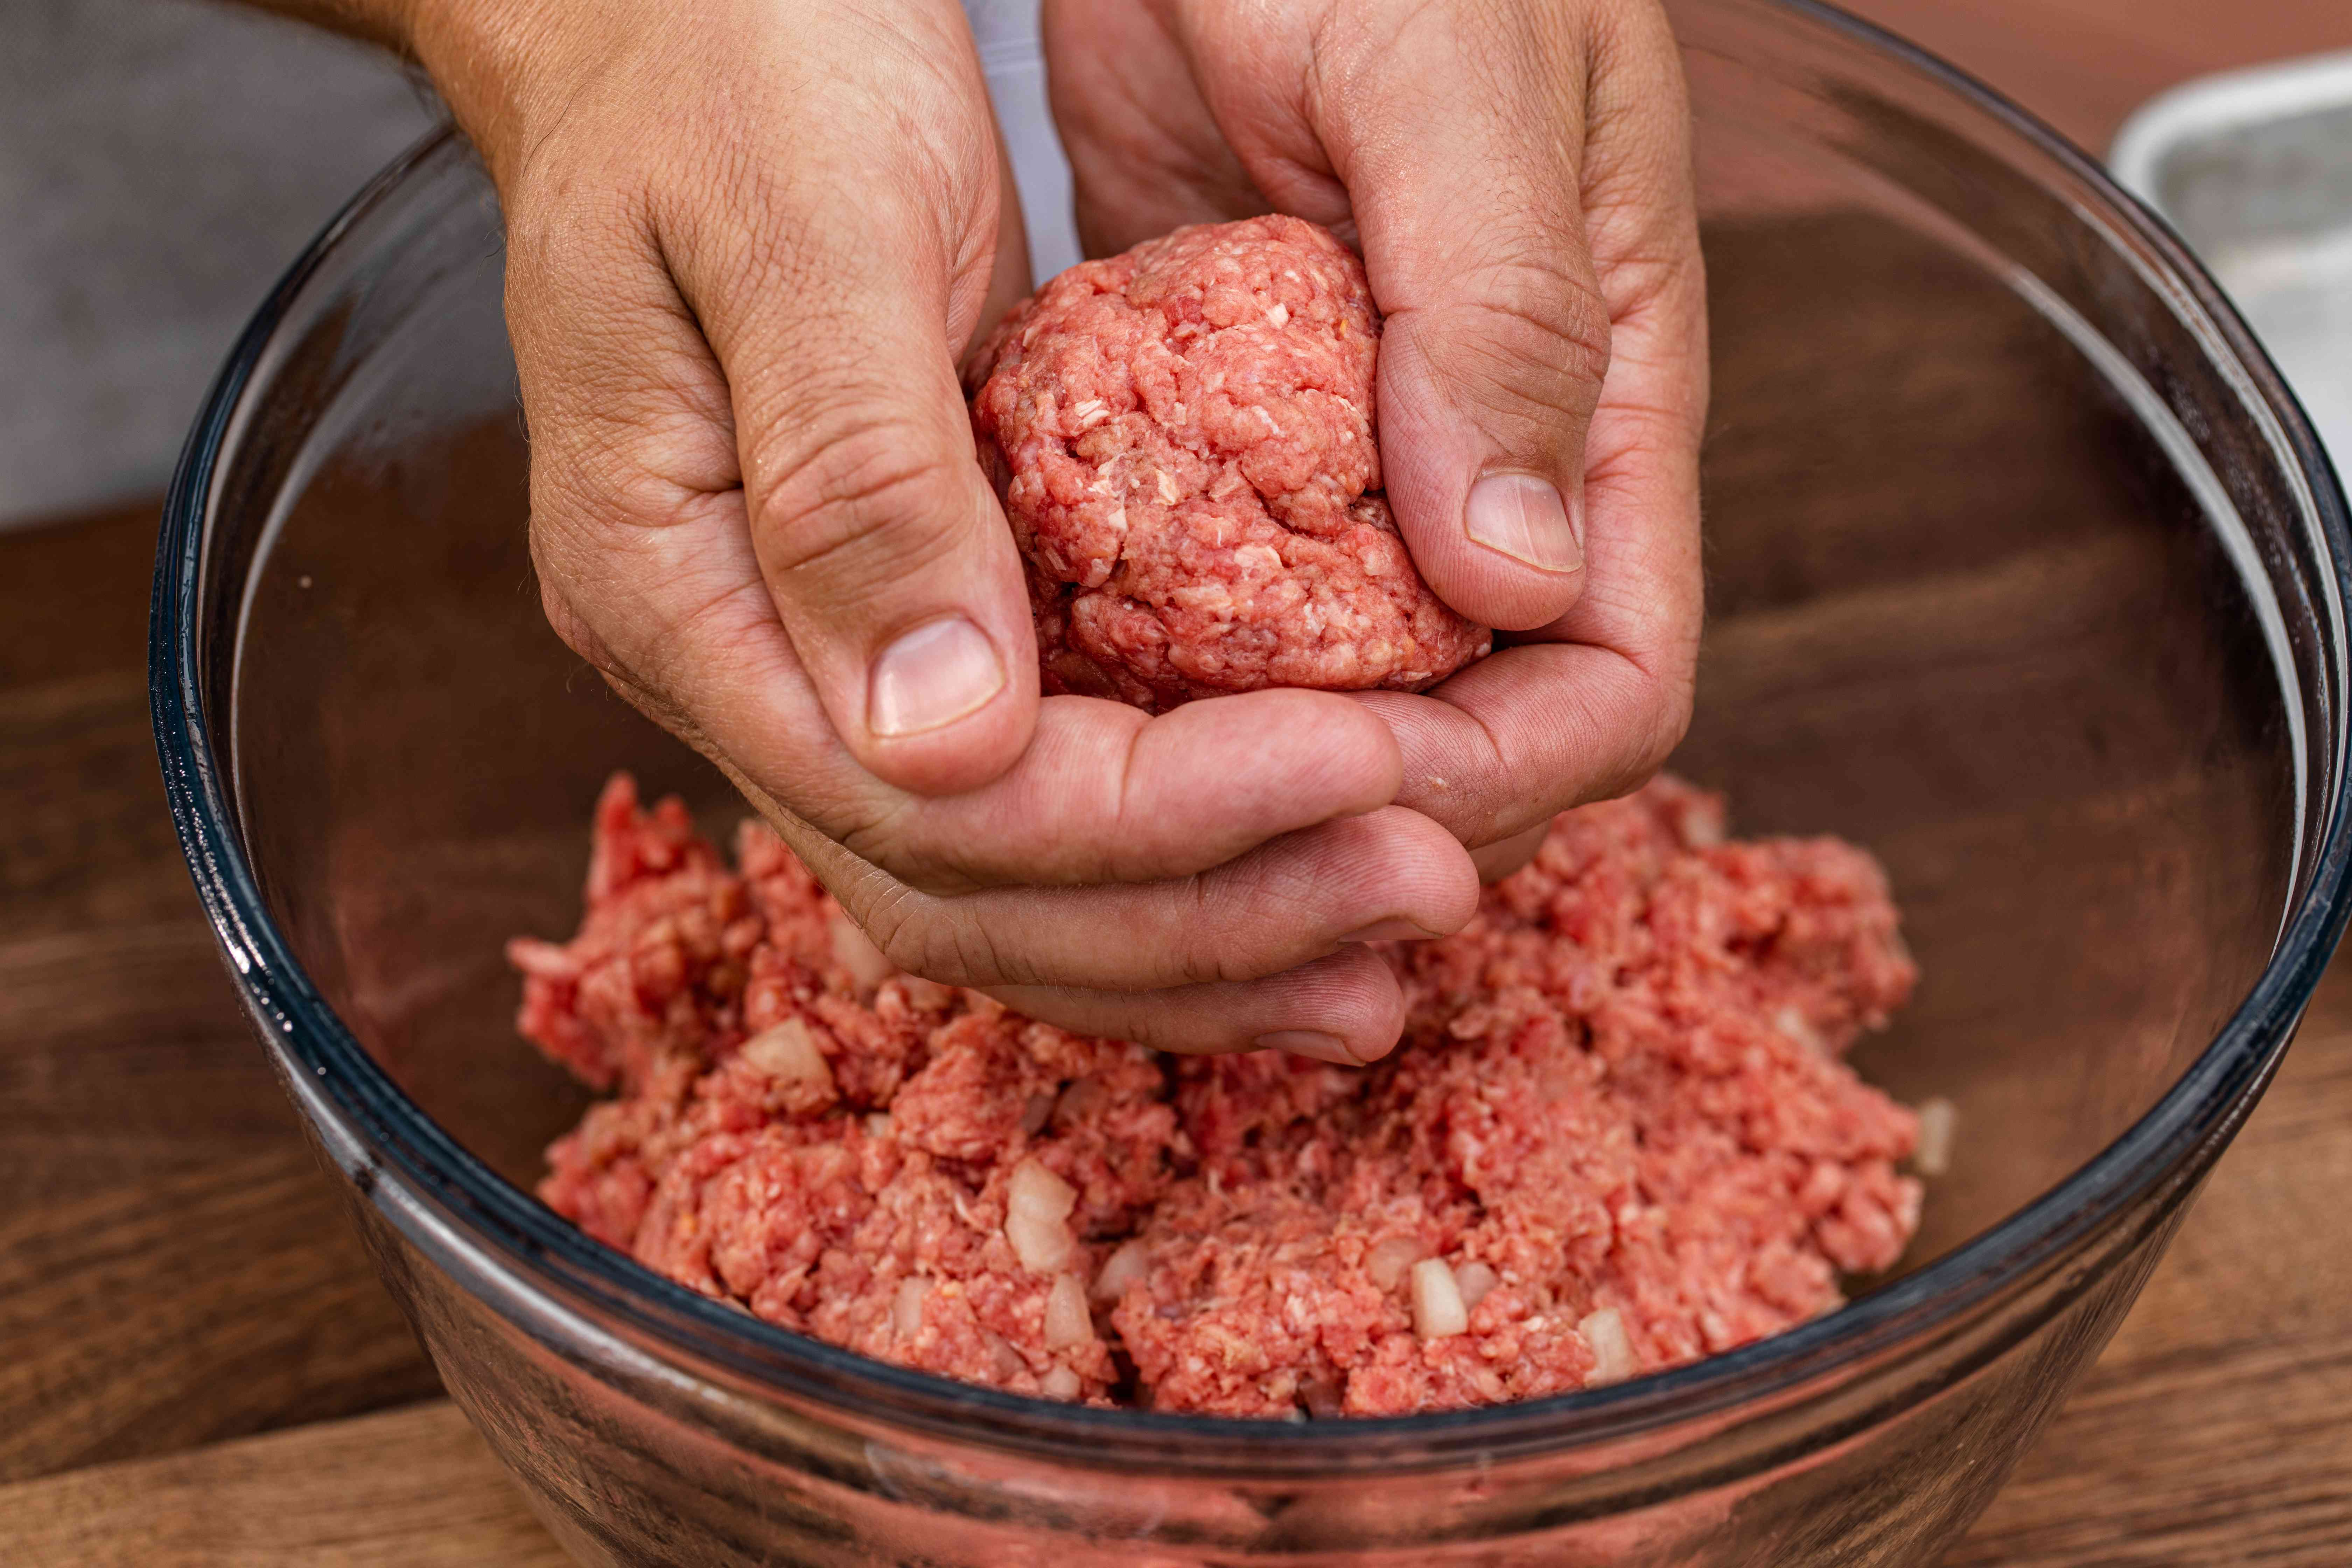 Forming balls of ground beef to make a classic bacon cheeseburger